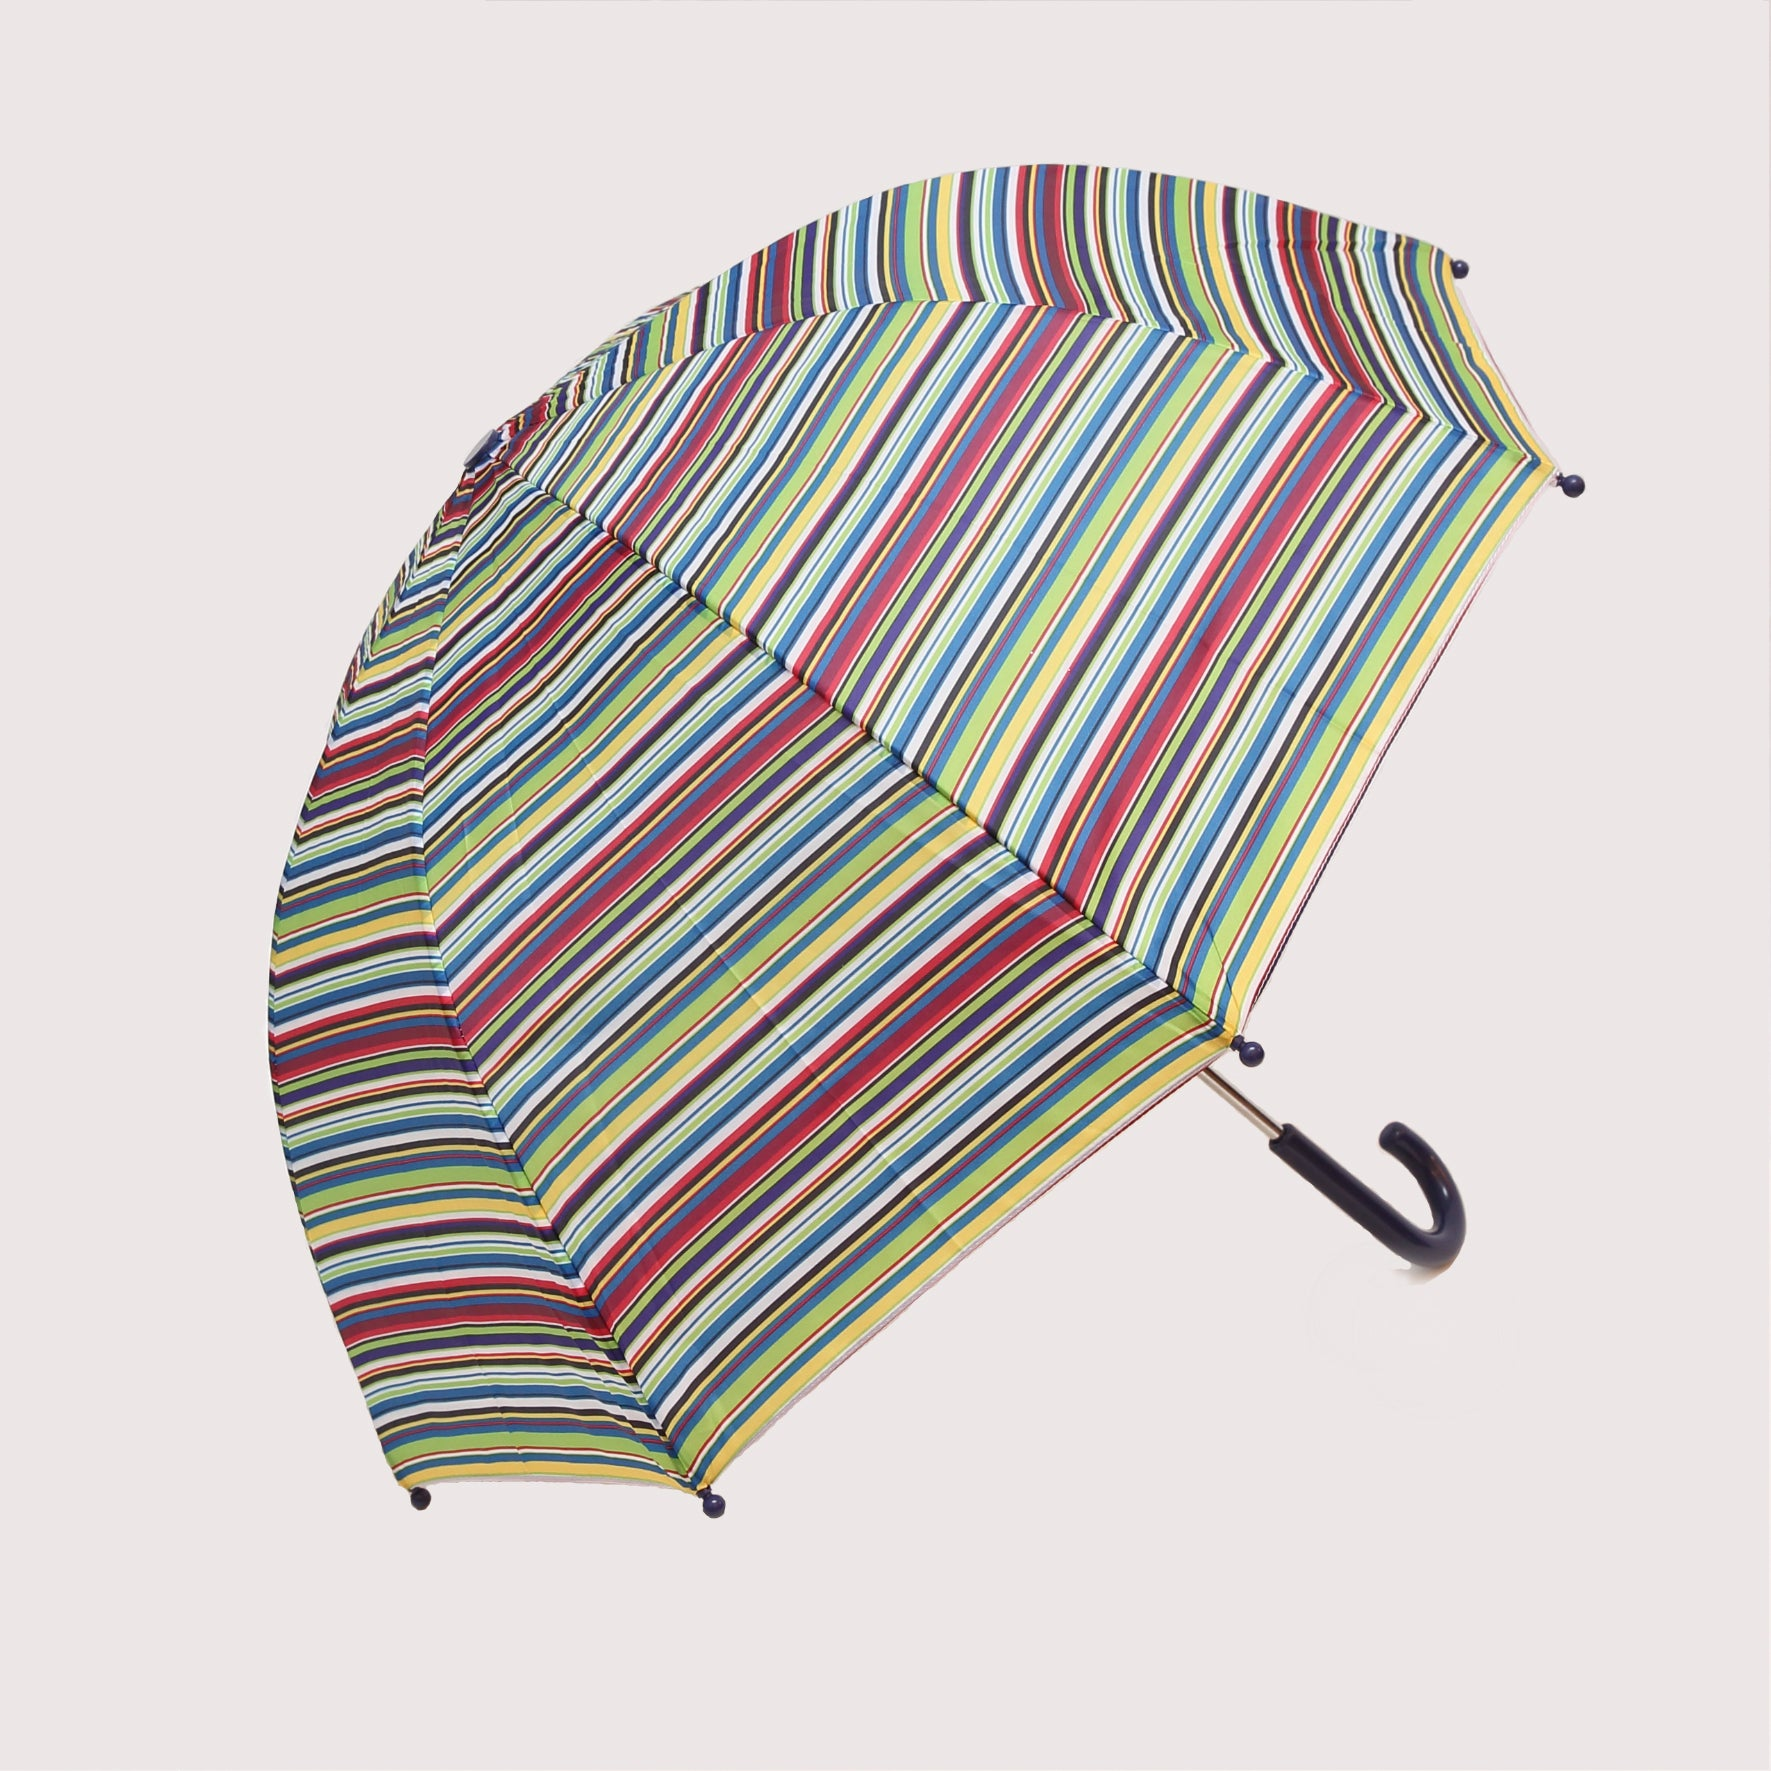 Pluie Pluie Blue Stripe Umbrella